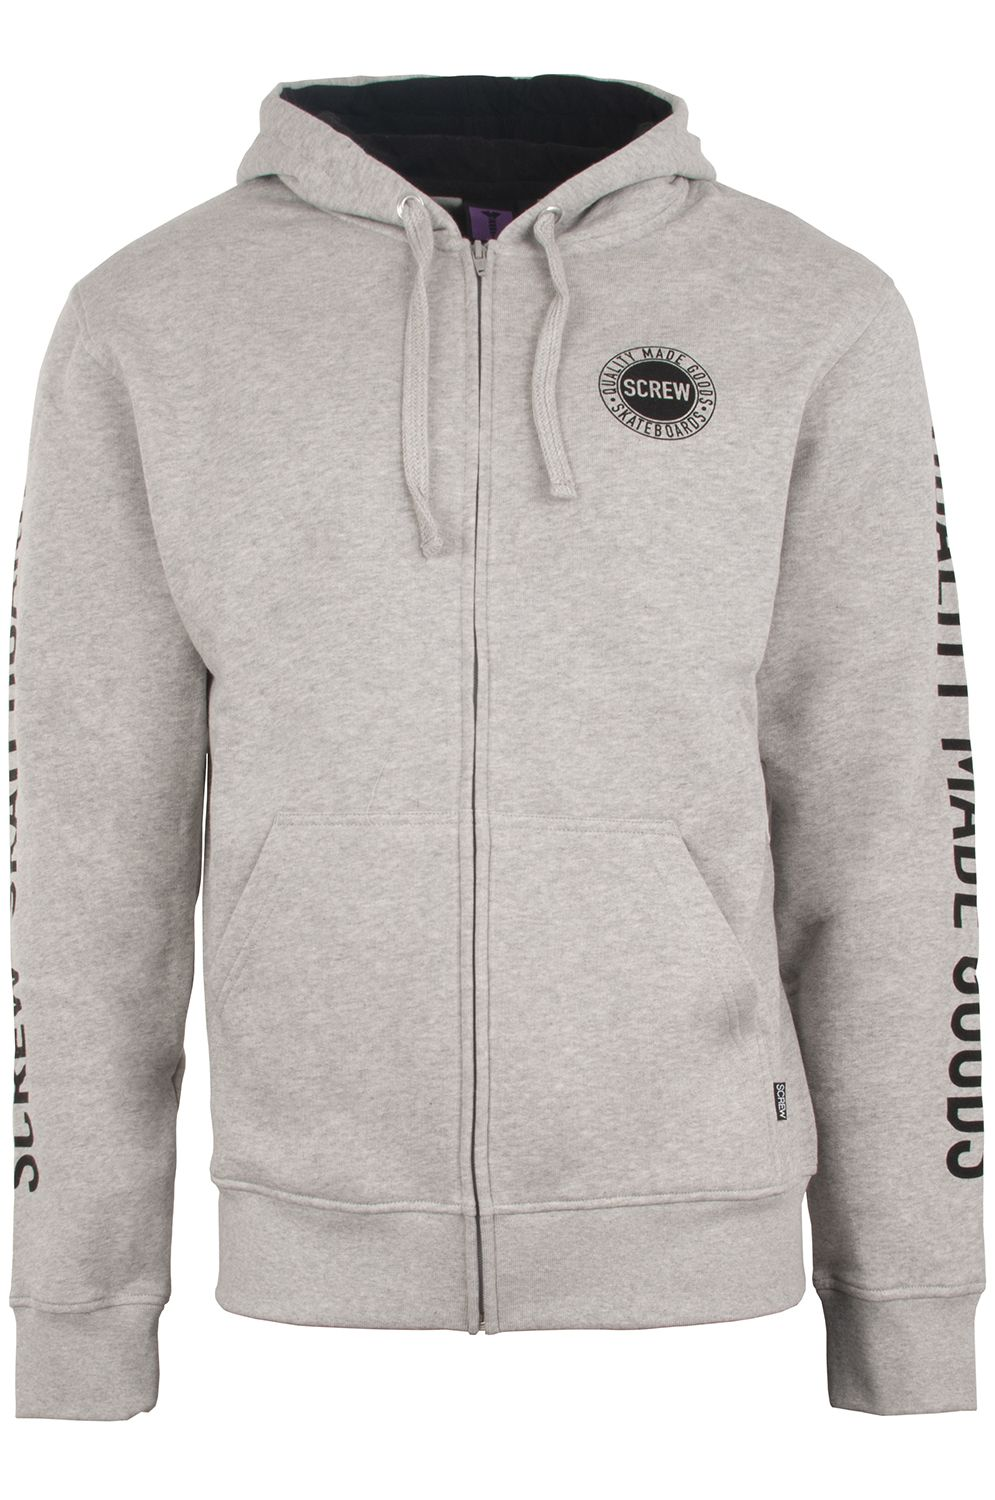 Sweat Fecho Screw COMPTOM Heather Grey